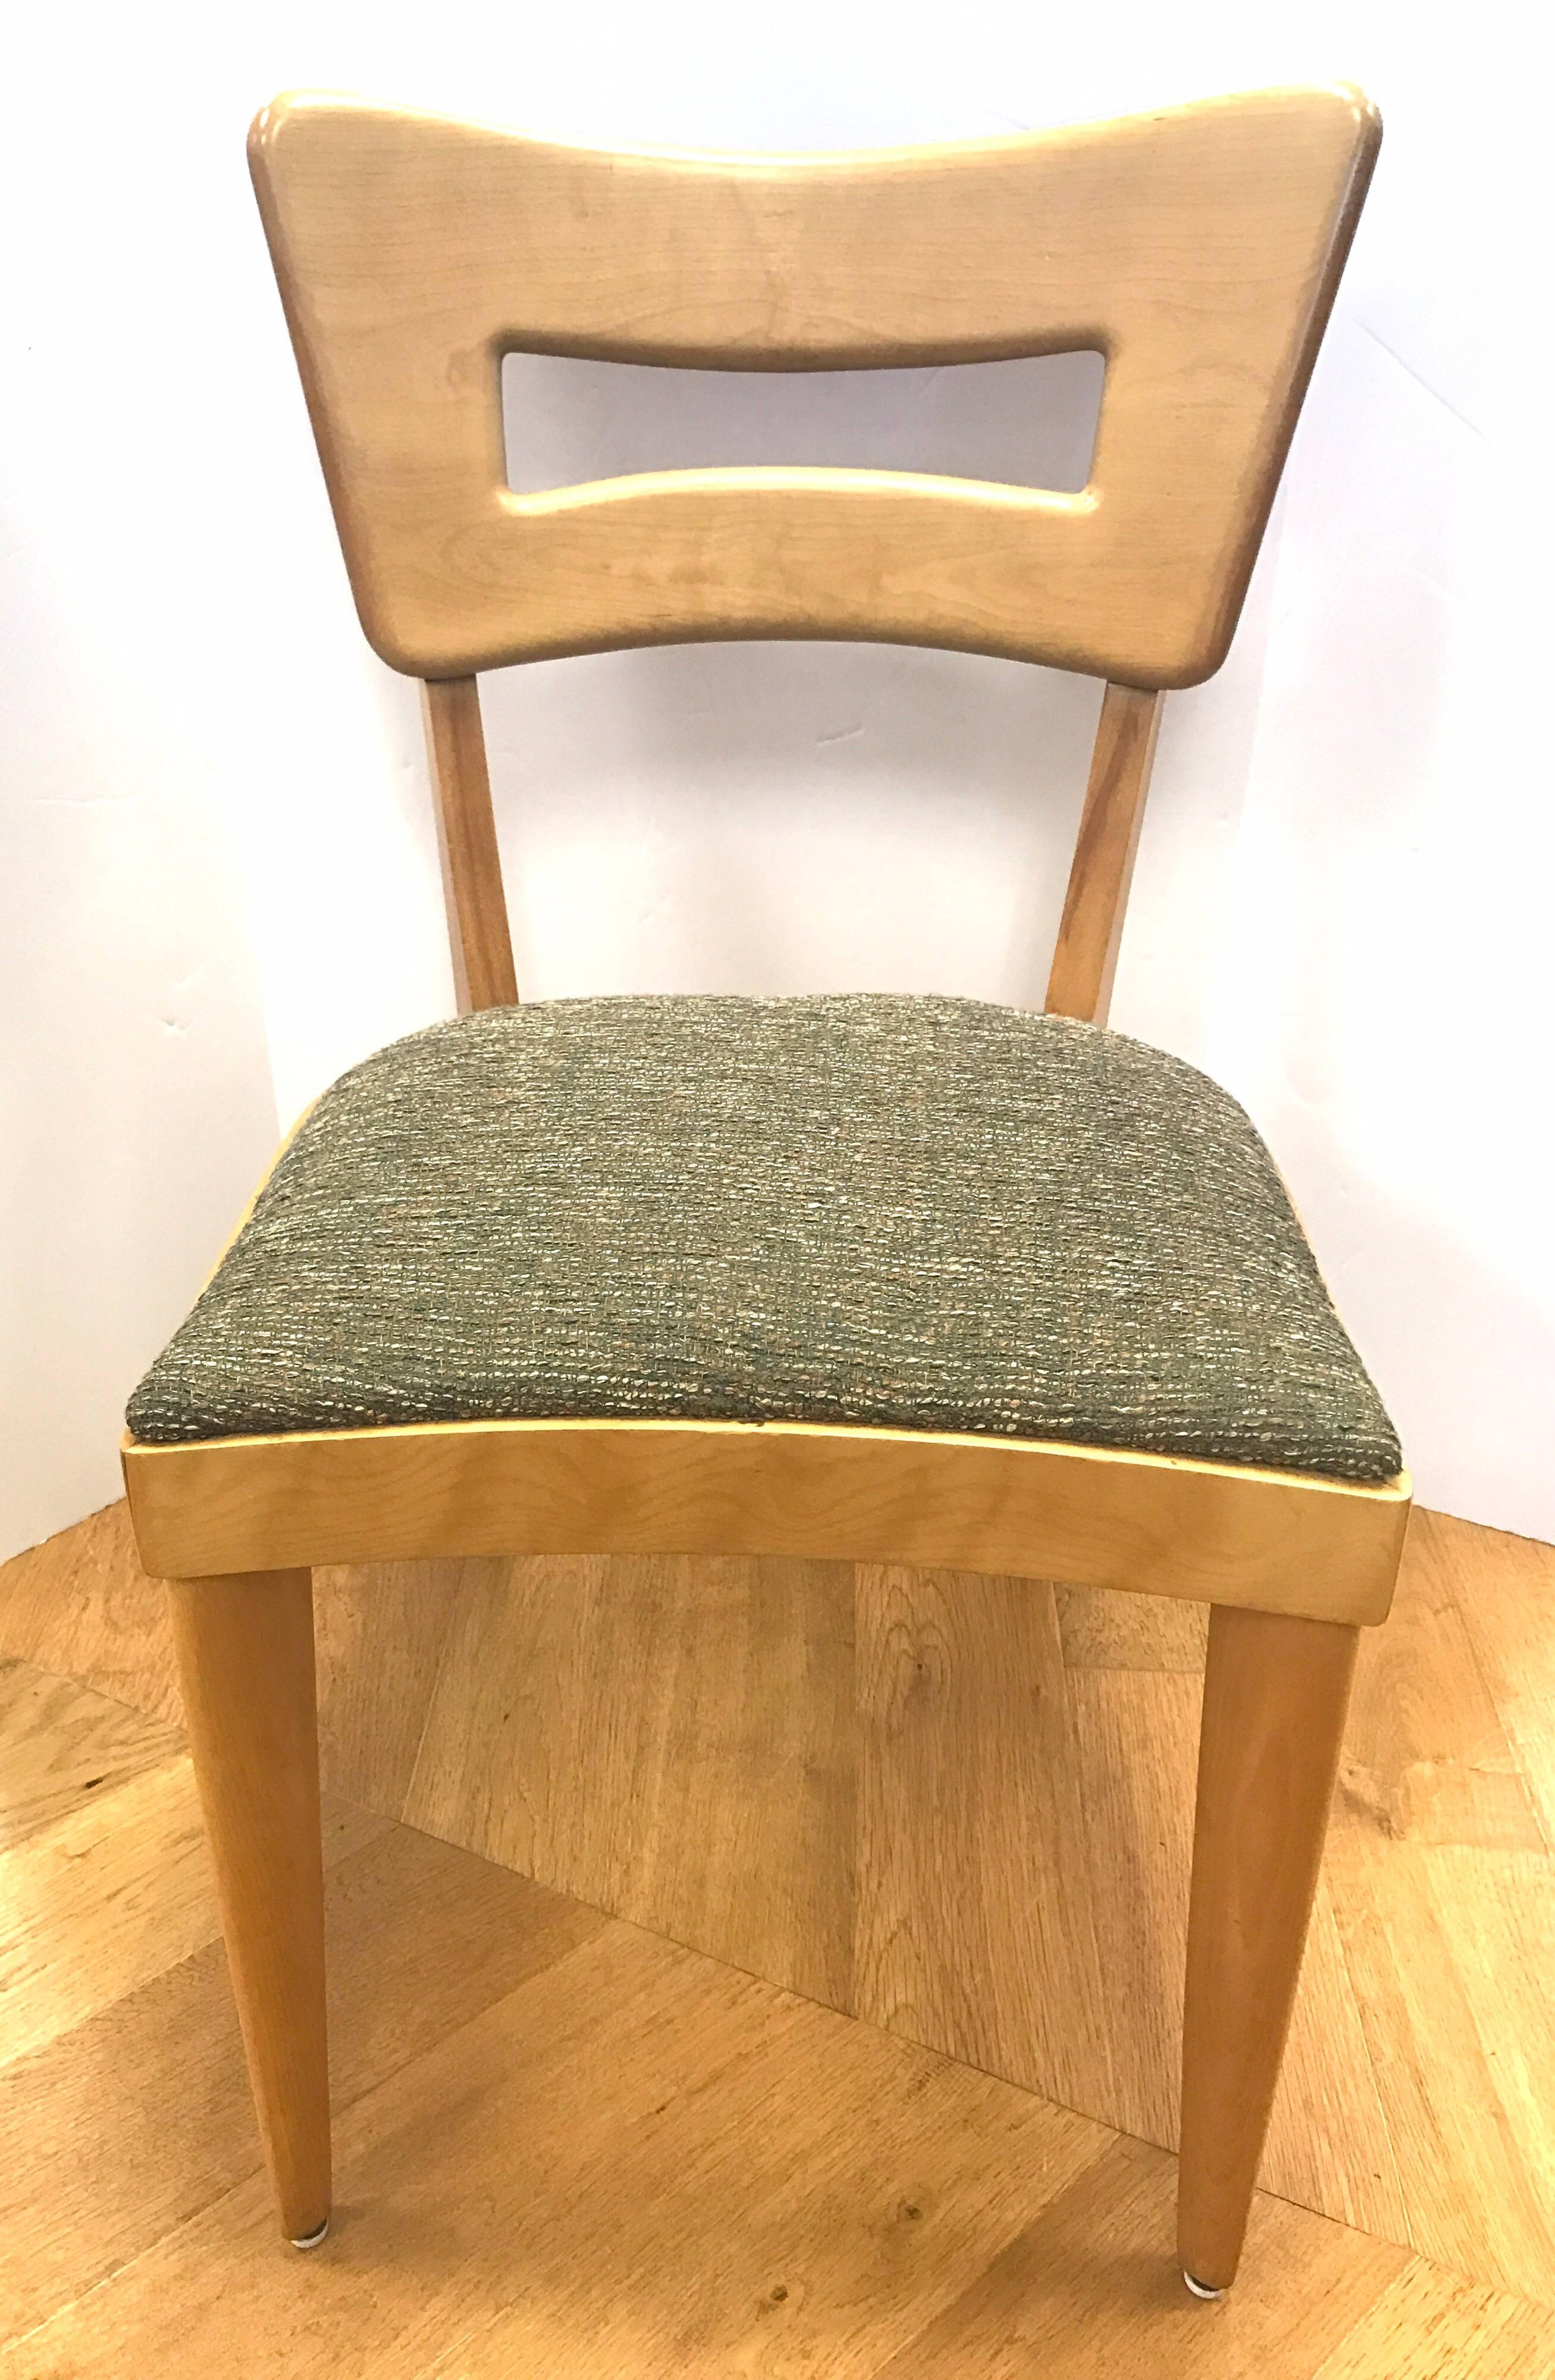 heywood wakefield dogbone chairs pool lounge chair mid century modern iconic signed dog bone produced by circa 1950 this set of four birchwood m154